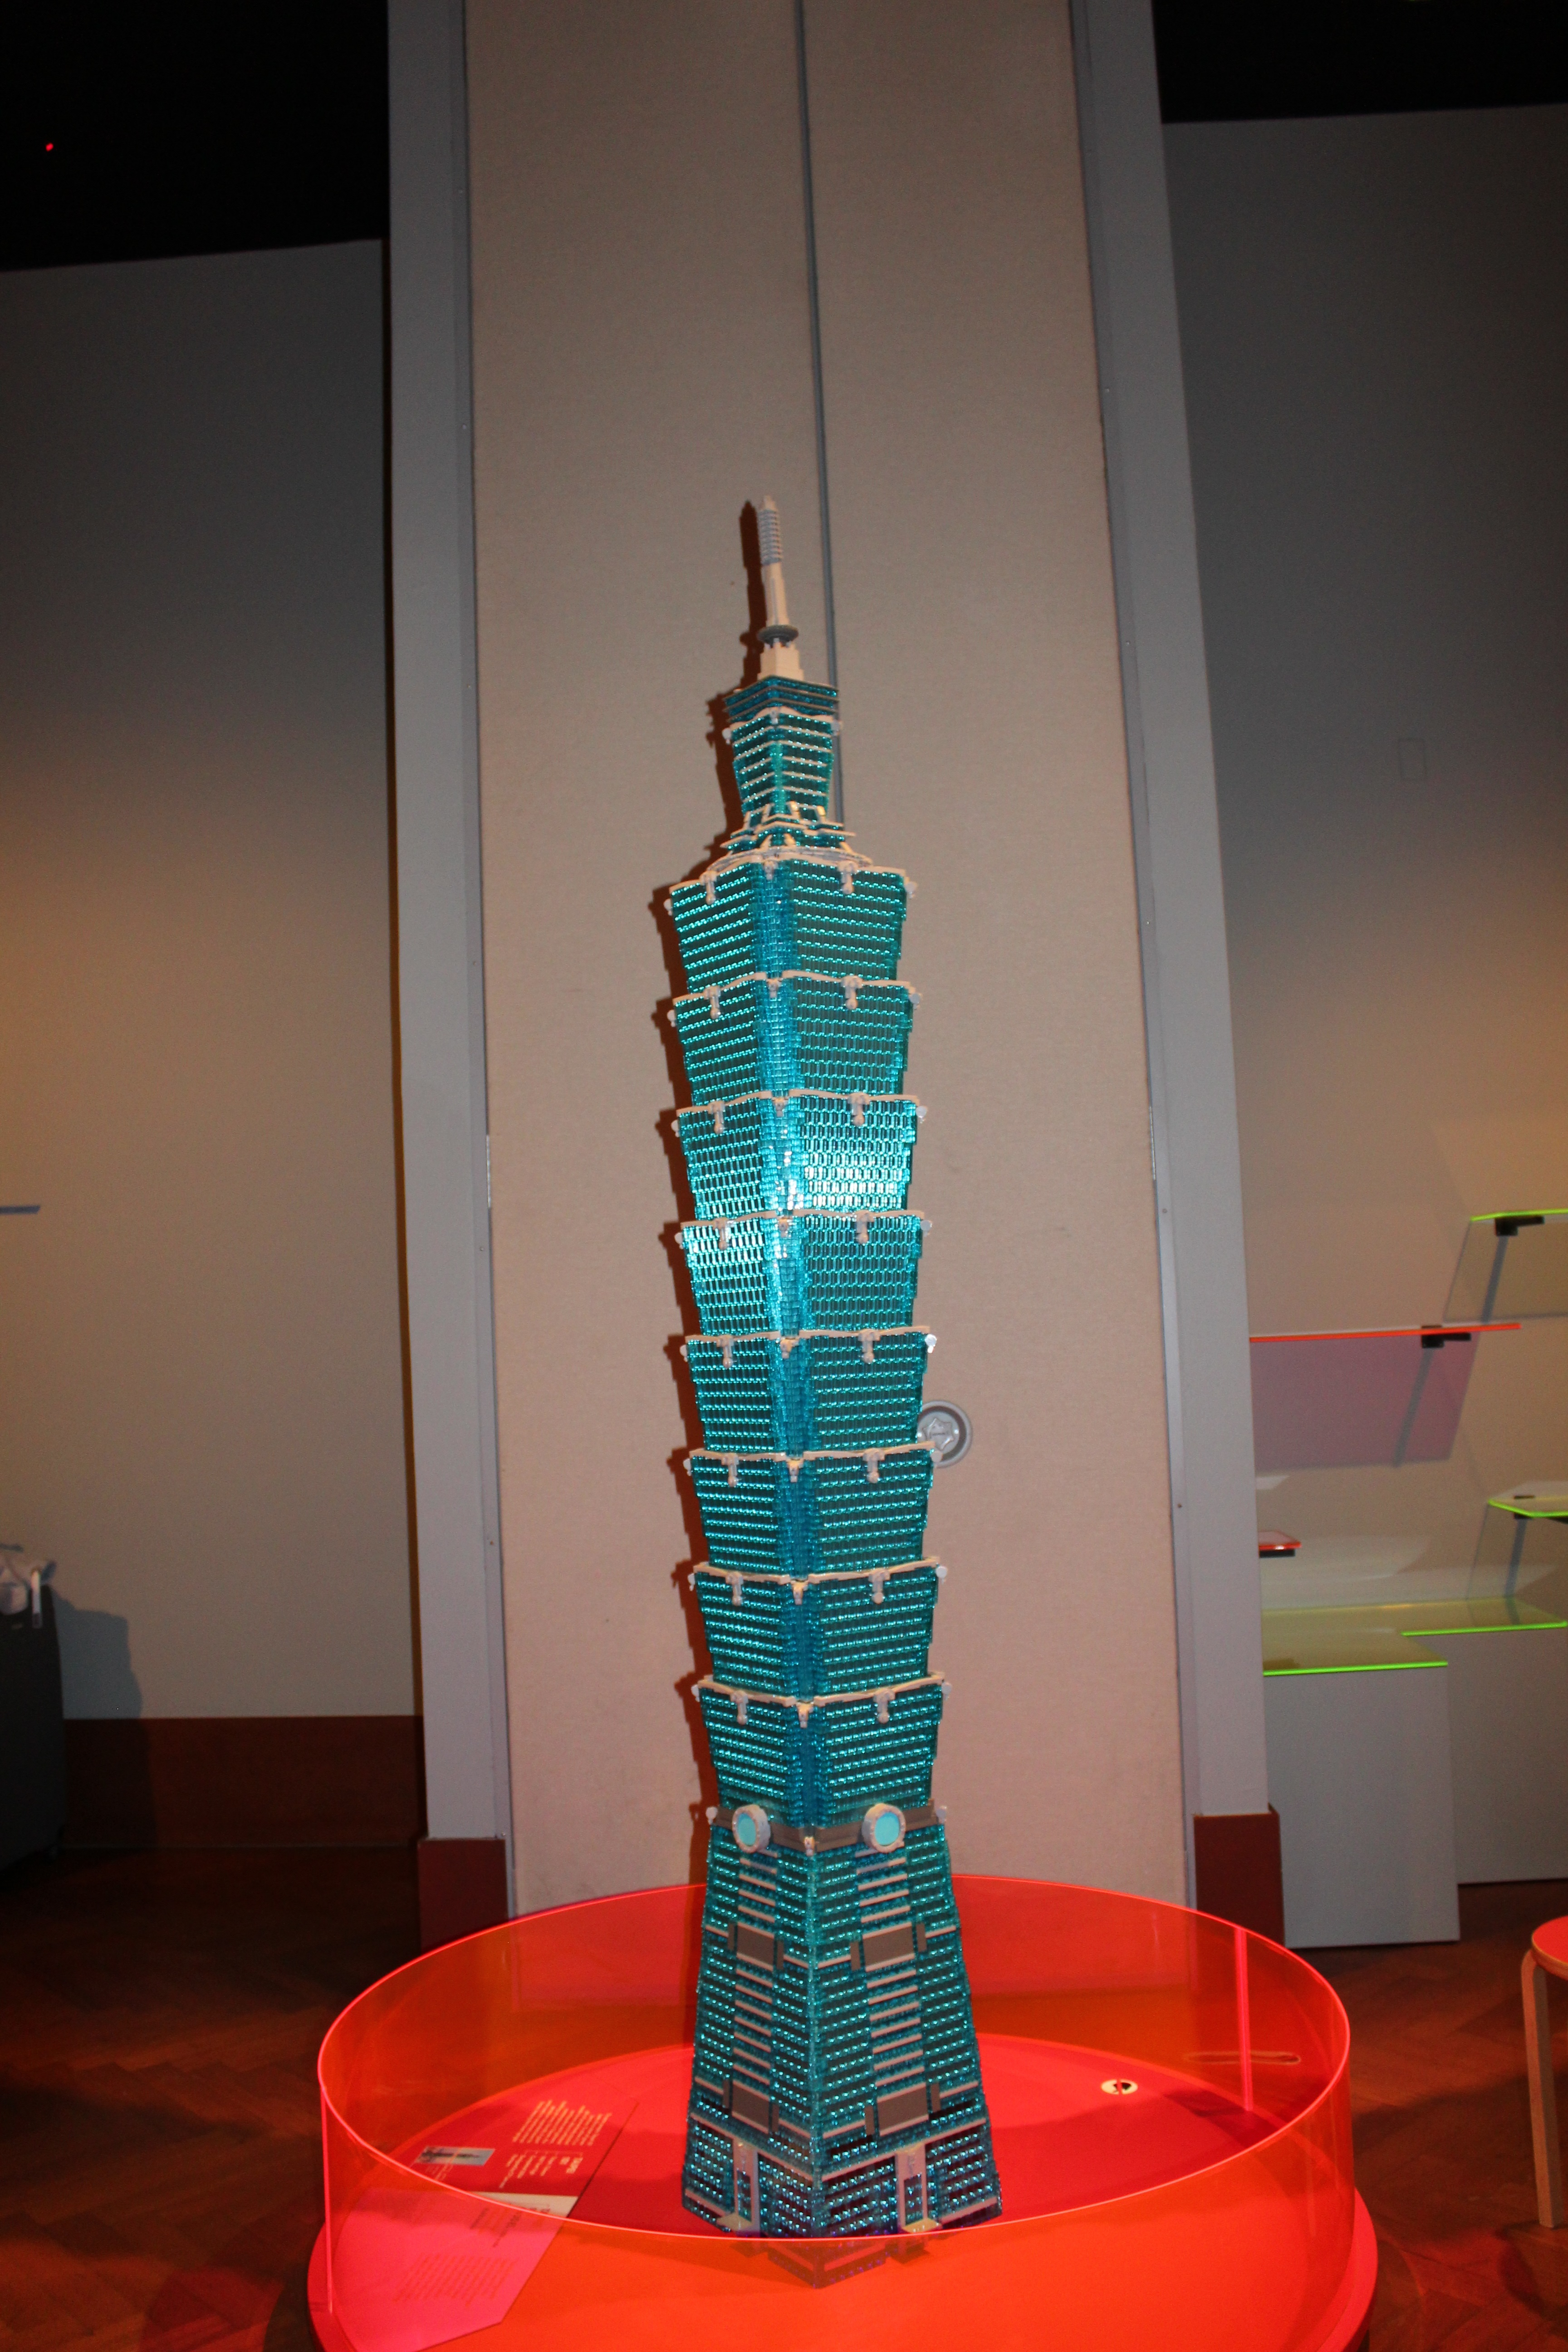 Photo shows a lego replica of the Taipei 101 skyscraper